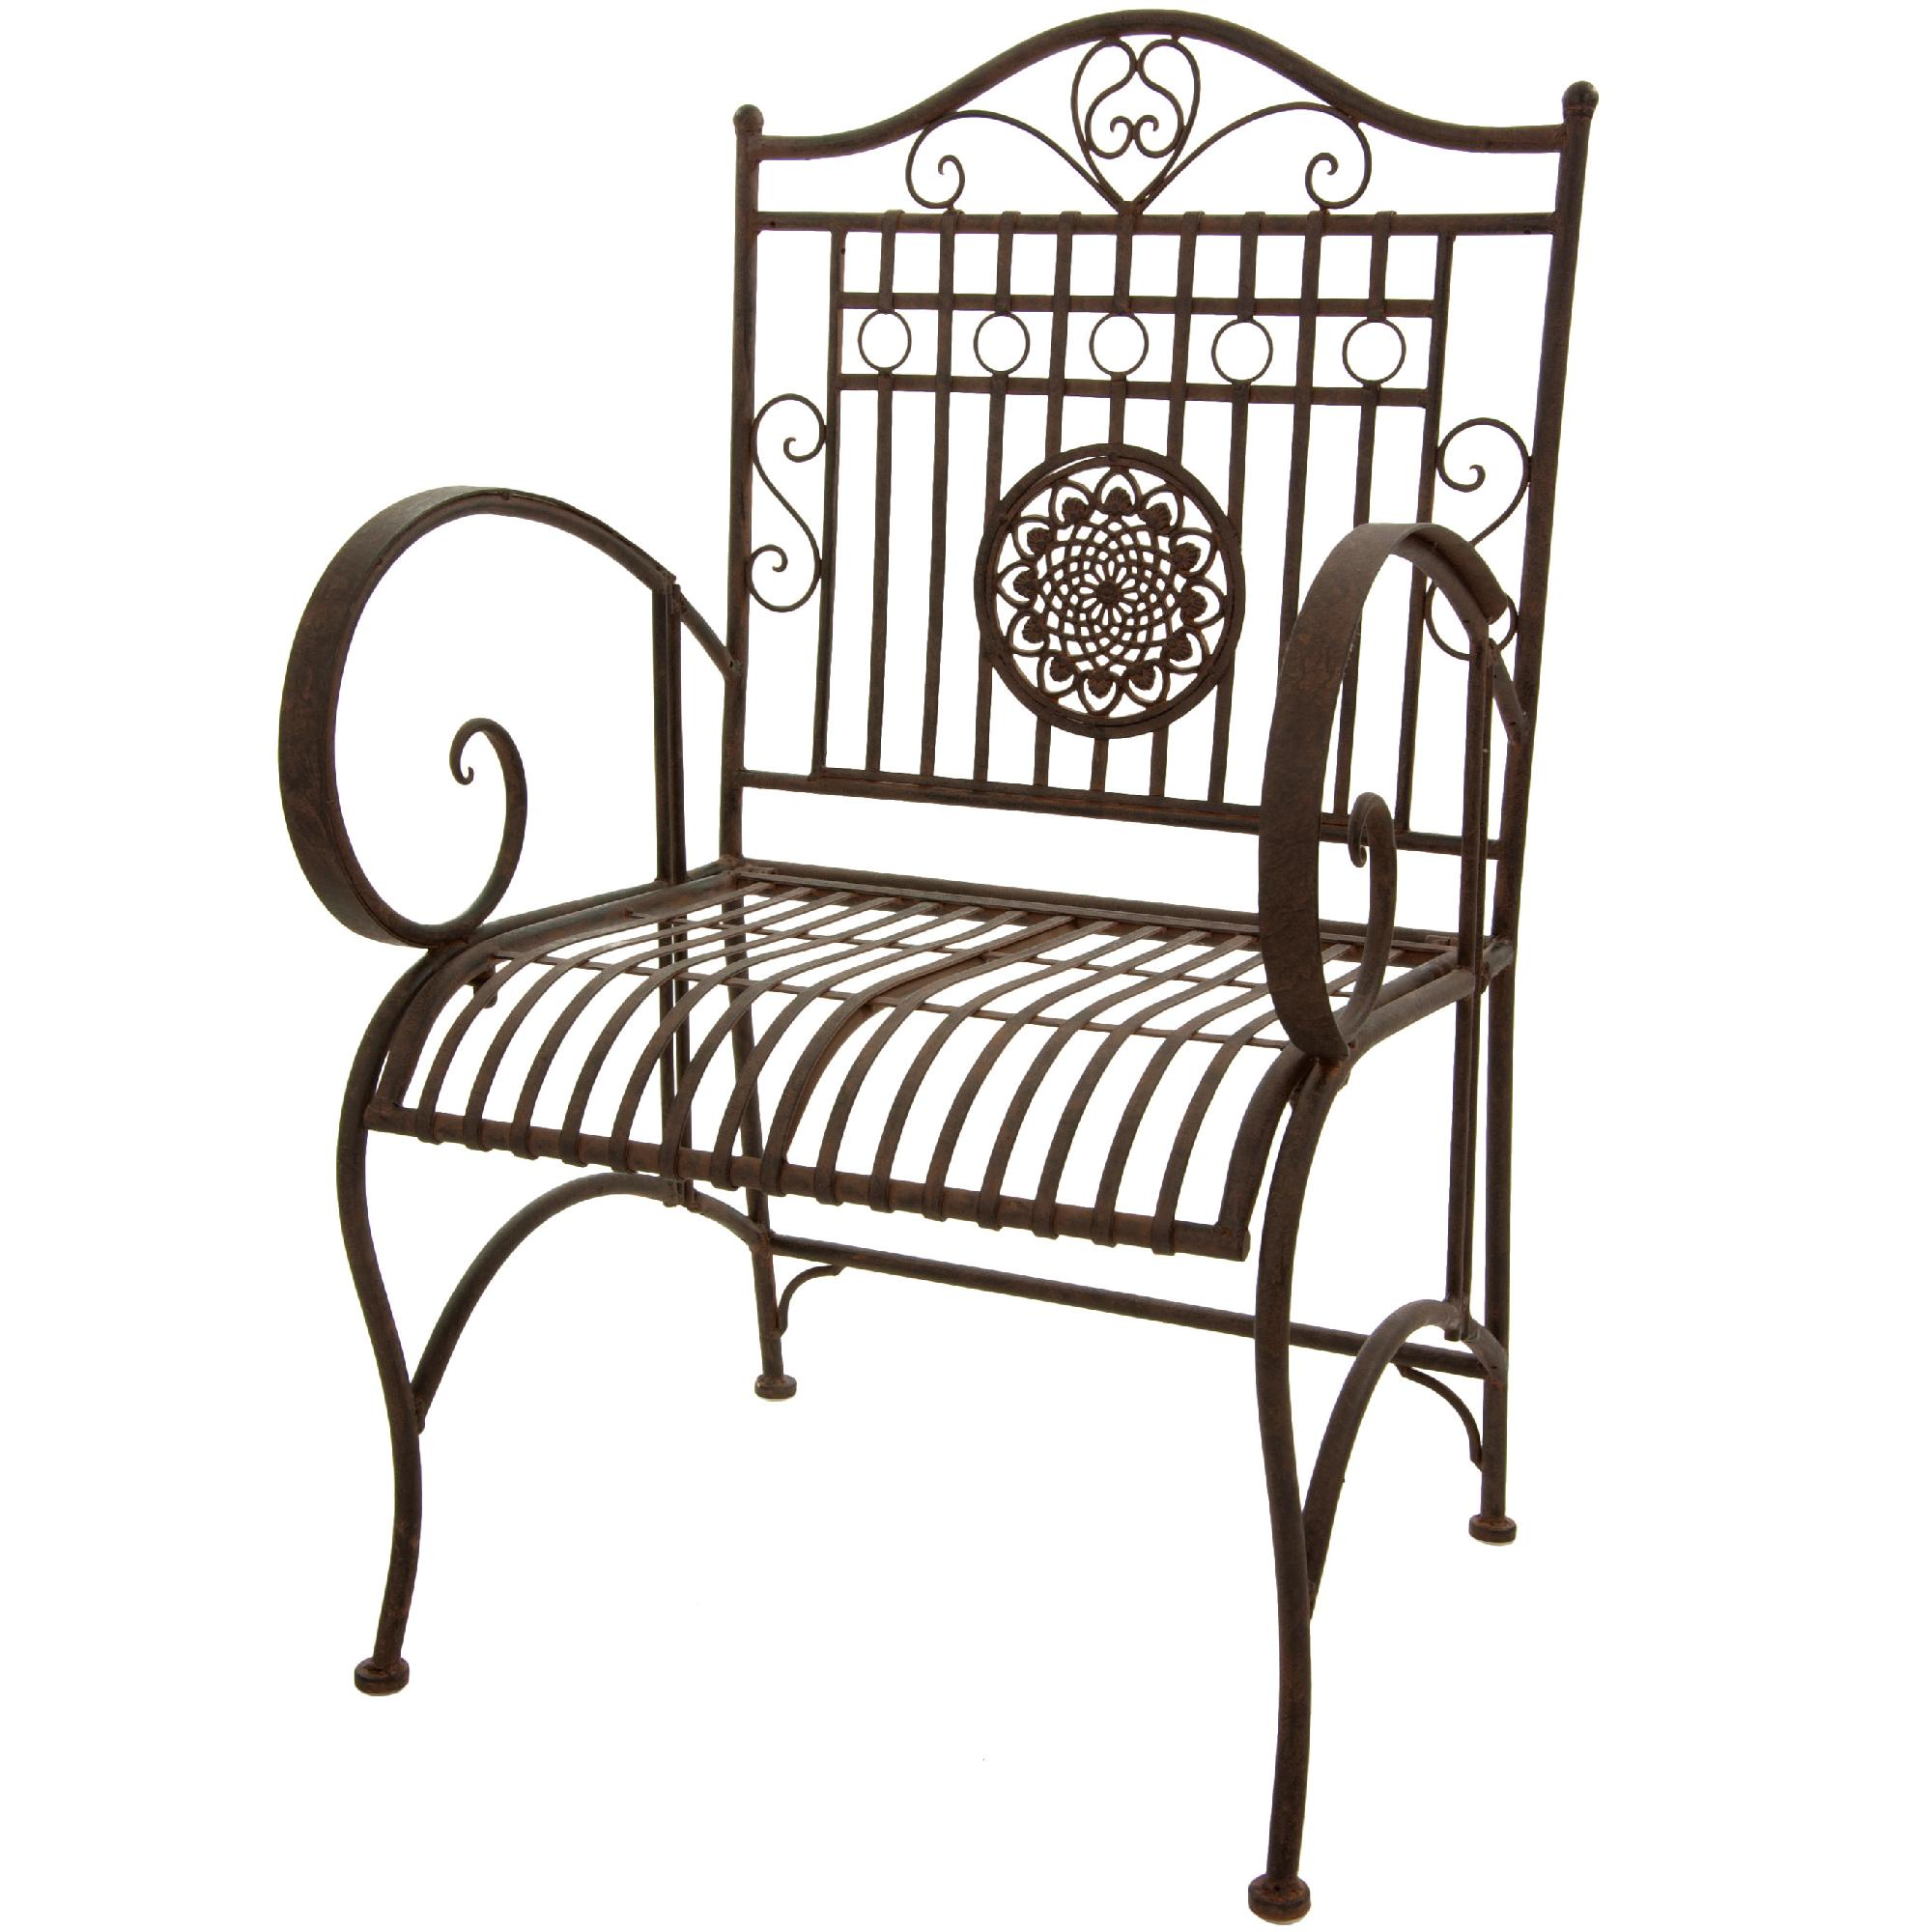 Oriental Furniture Rustic Wrought Iron Garden Chair  Rust